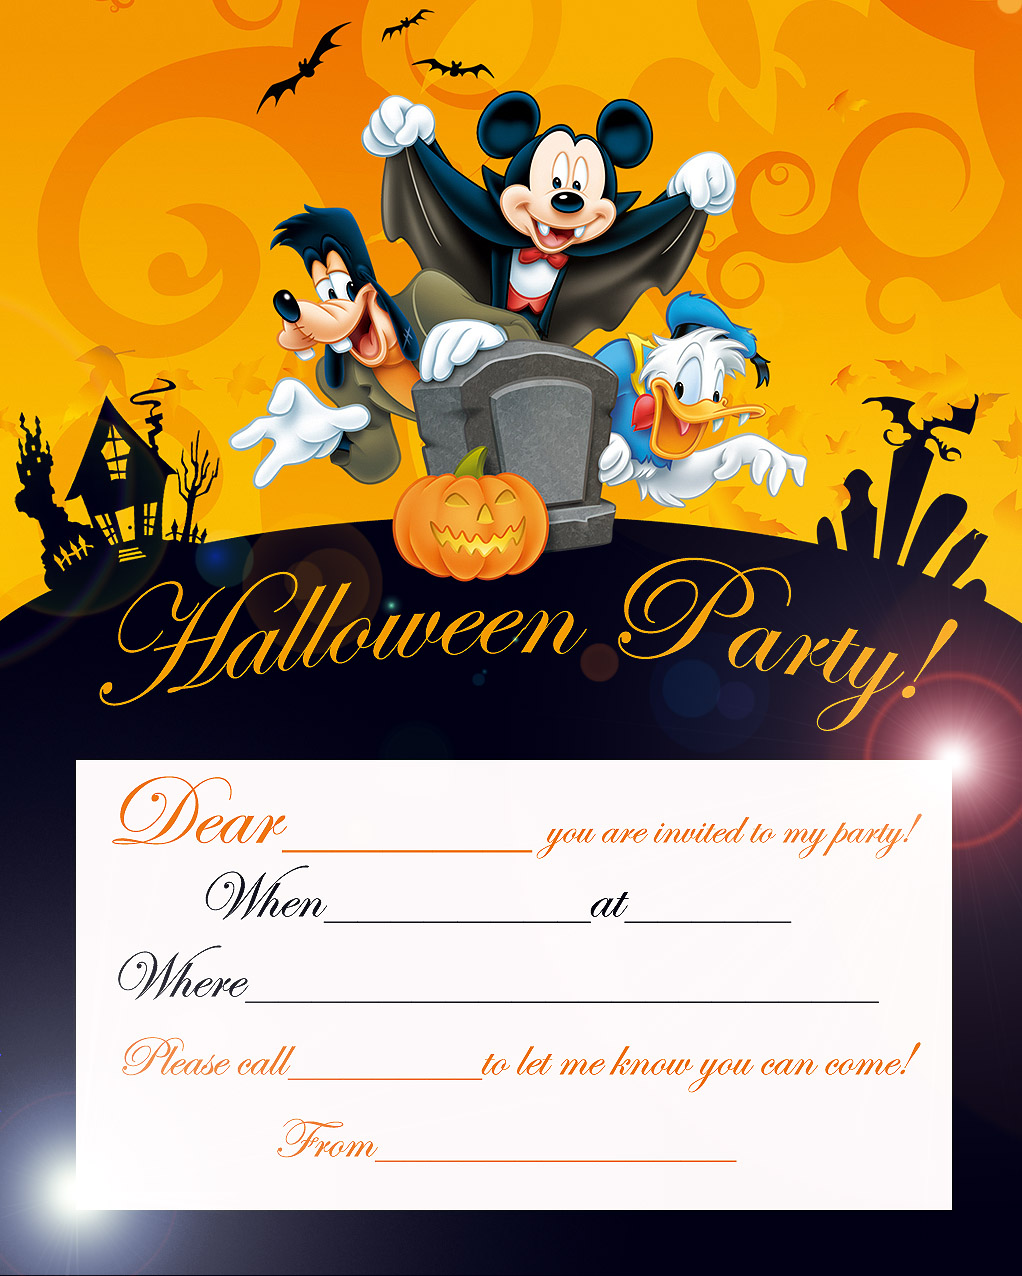 halloween party wdw